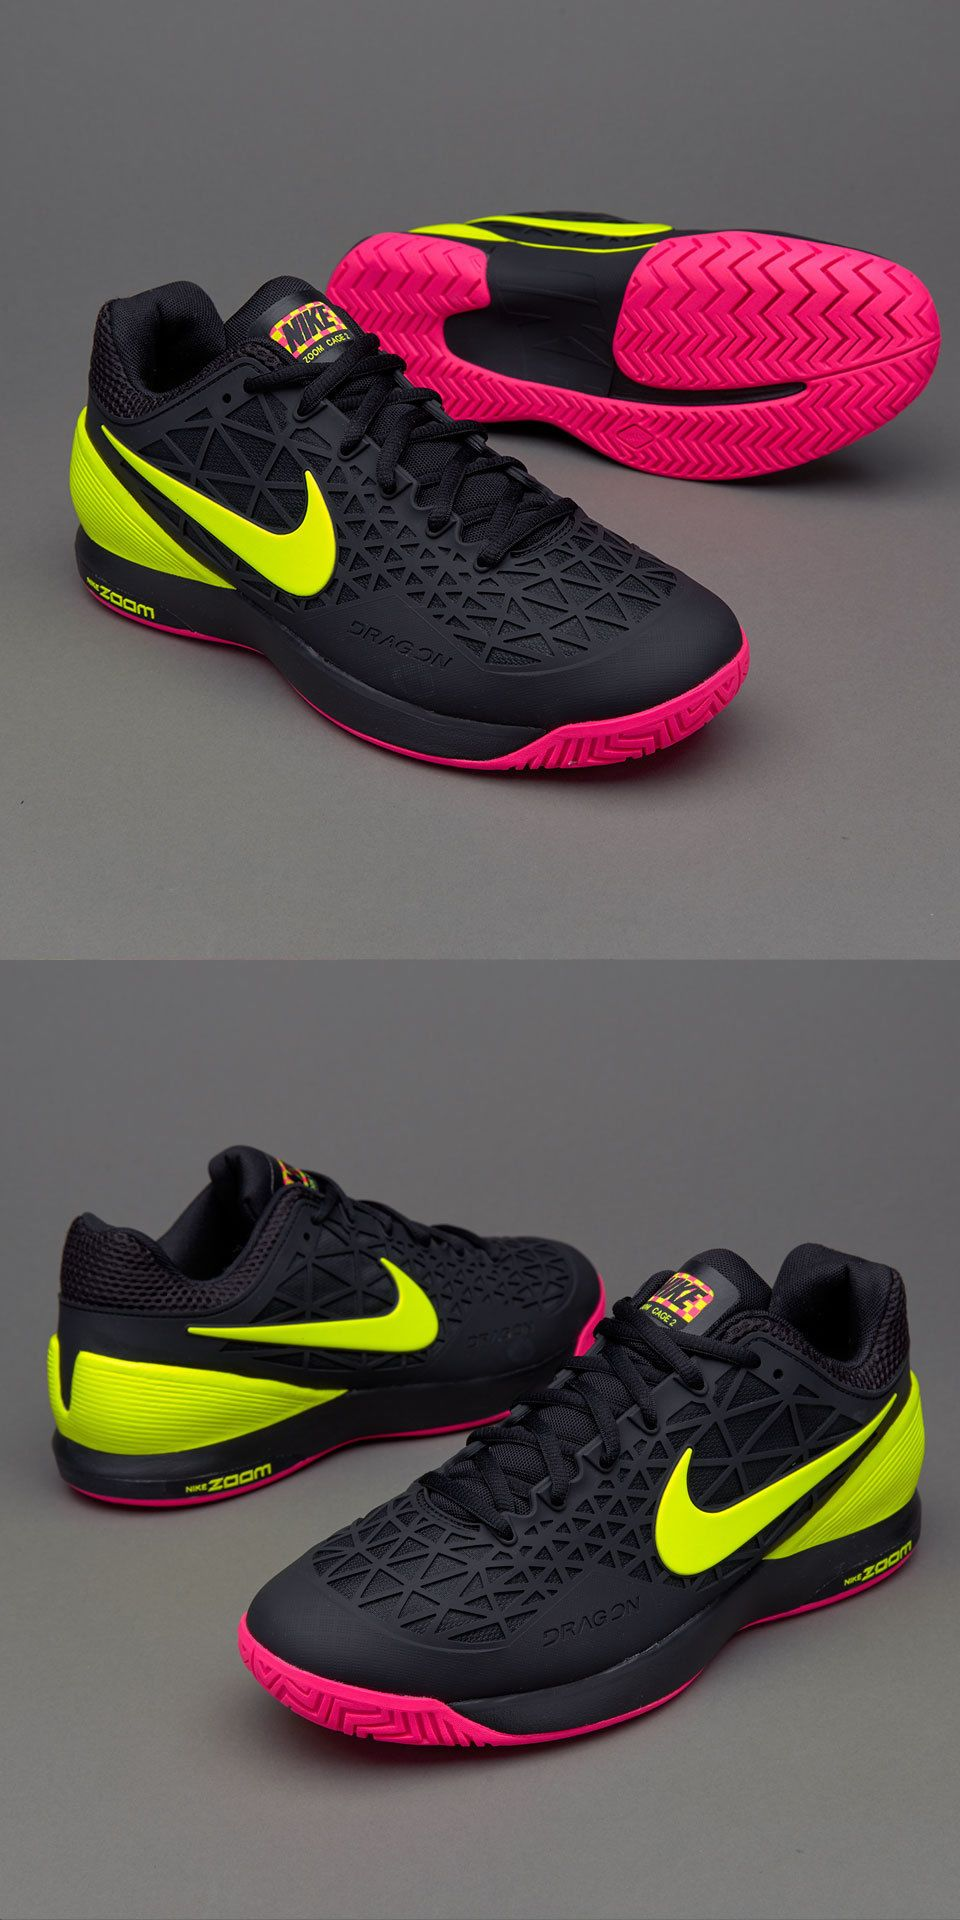 outlet store b08a4 7d047 Shoes 62230  Nike Zoom Cage 2 Tennis Shoes Federer Black Volt Brand New  (705247